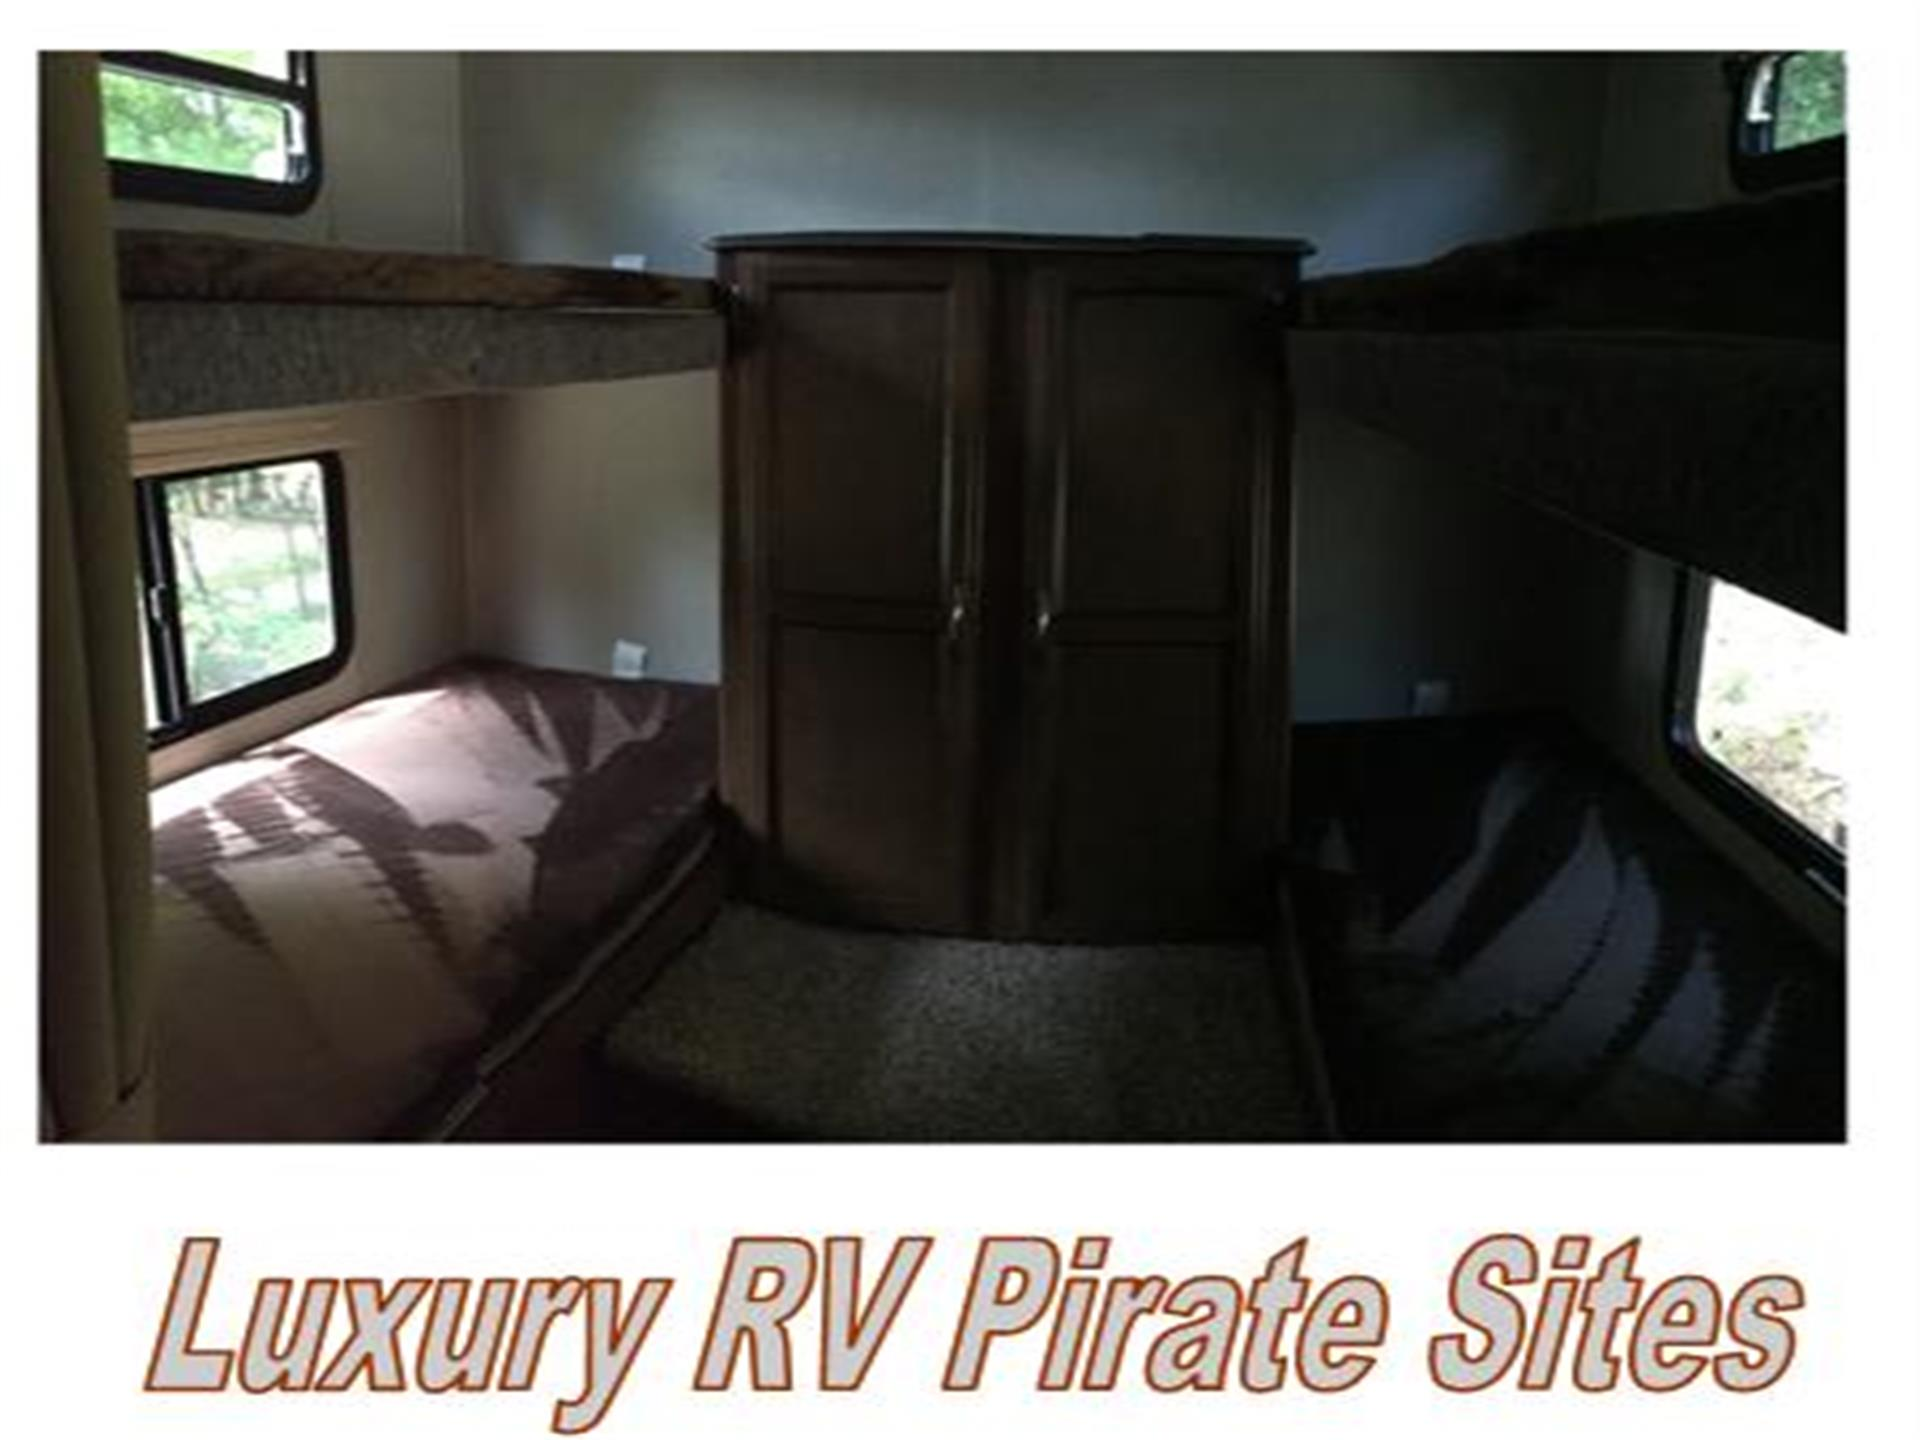 interior of a luxury rv rental with cabinets